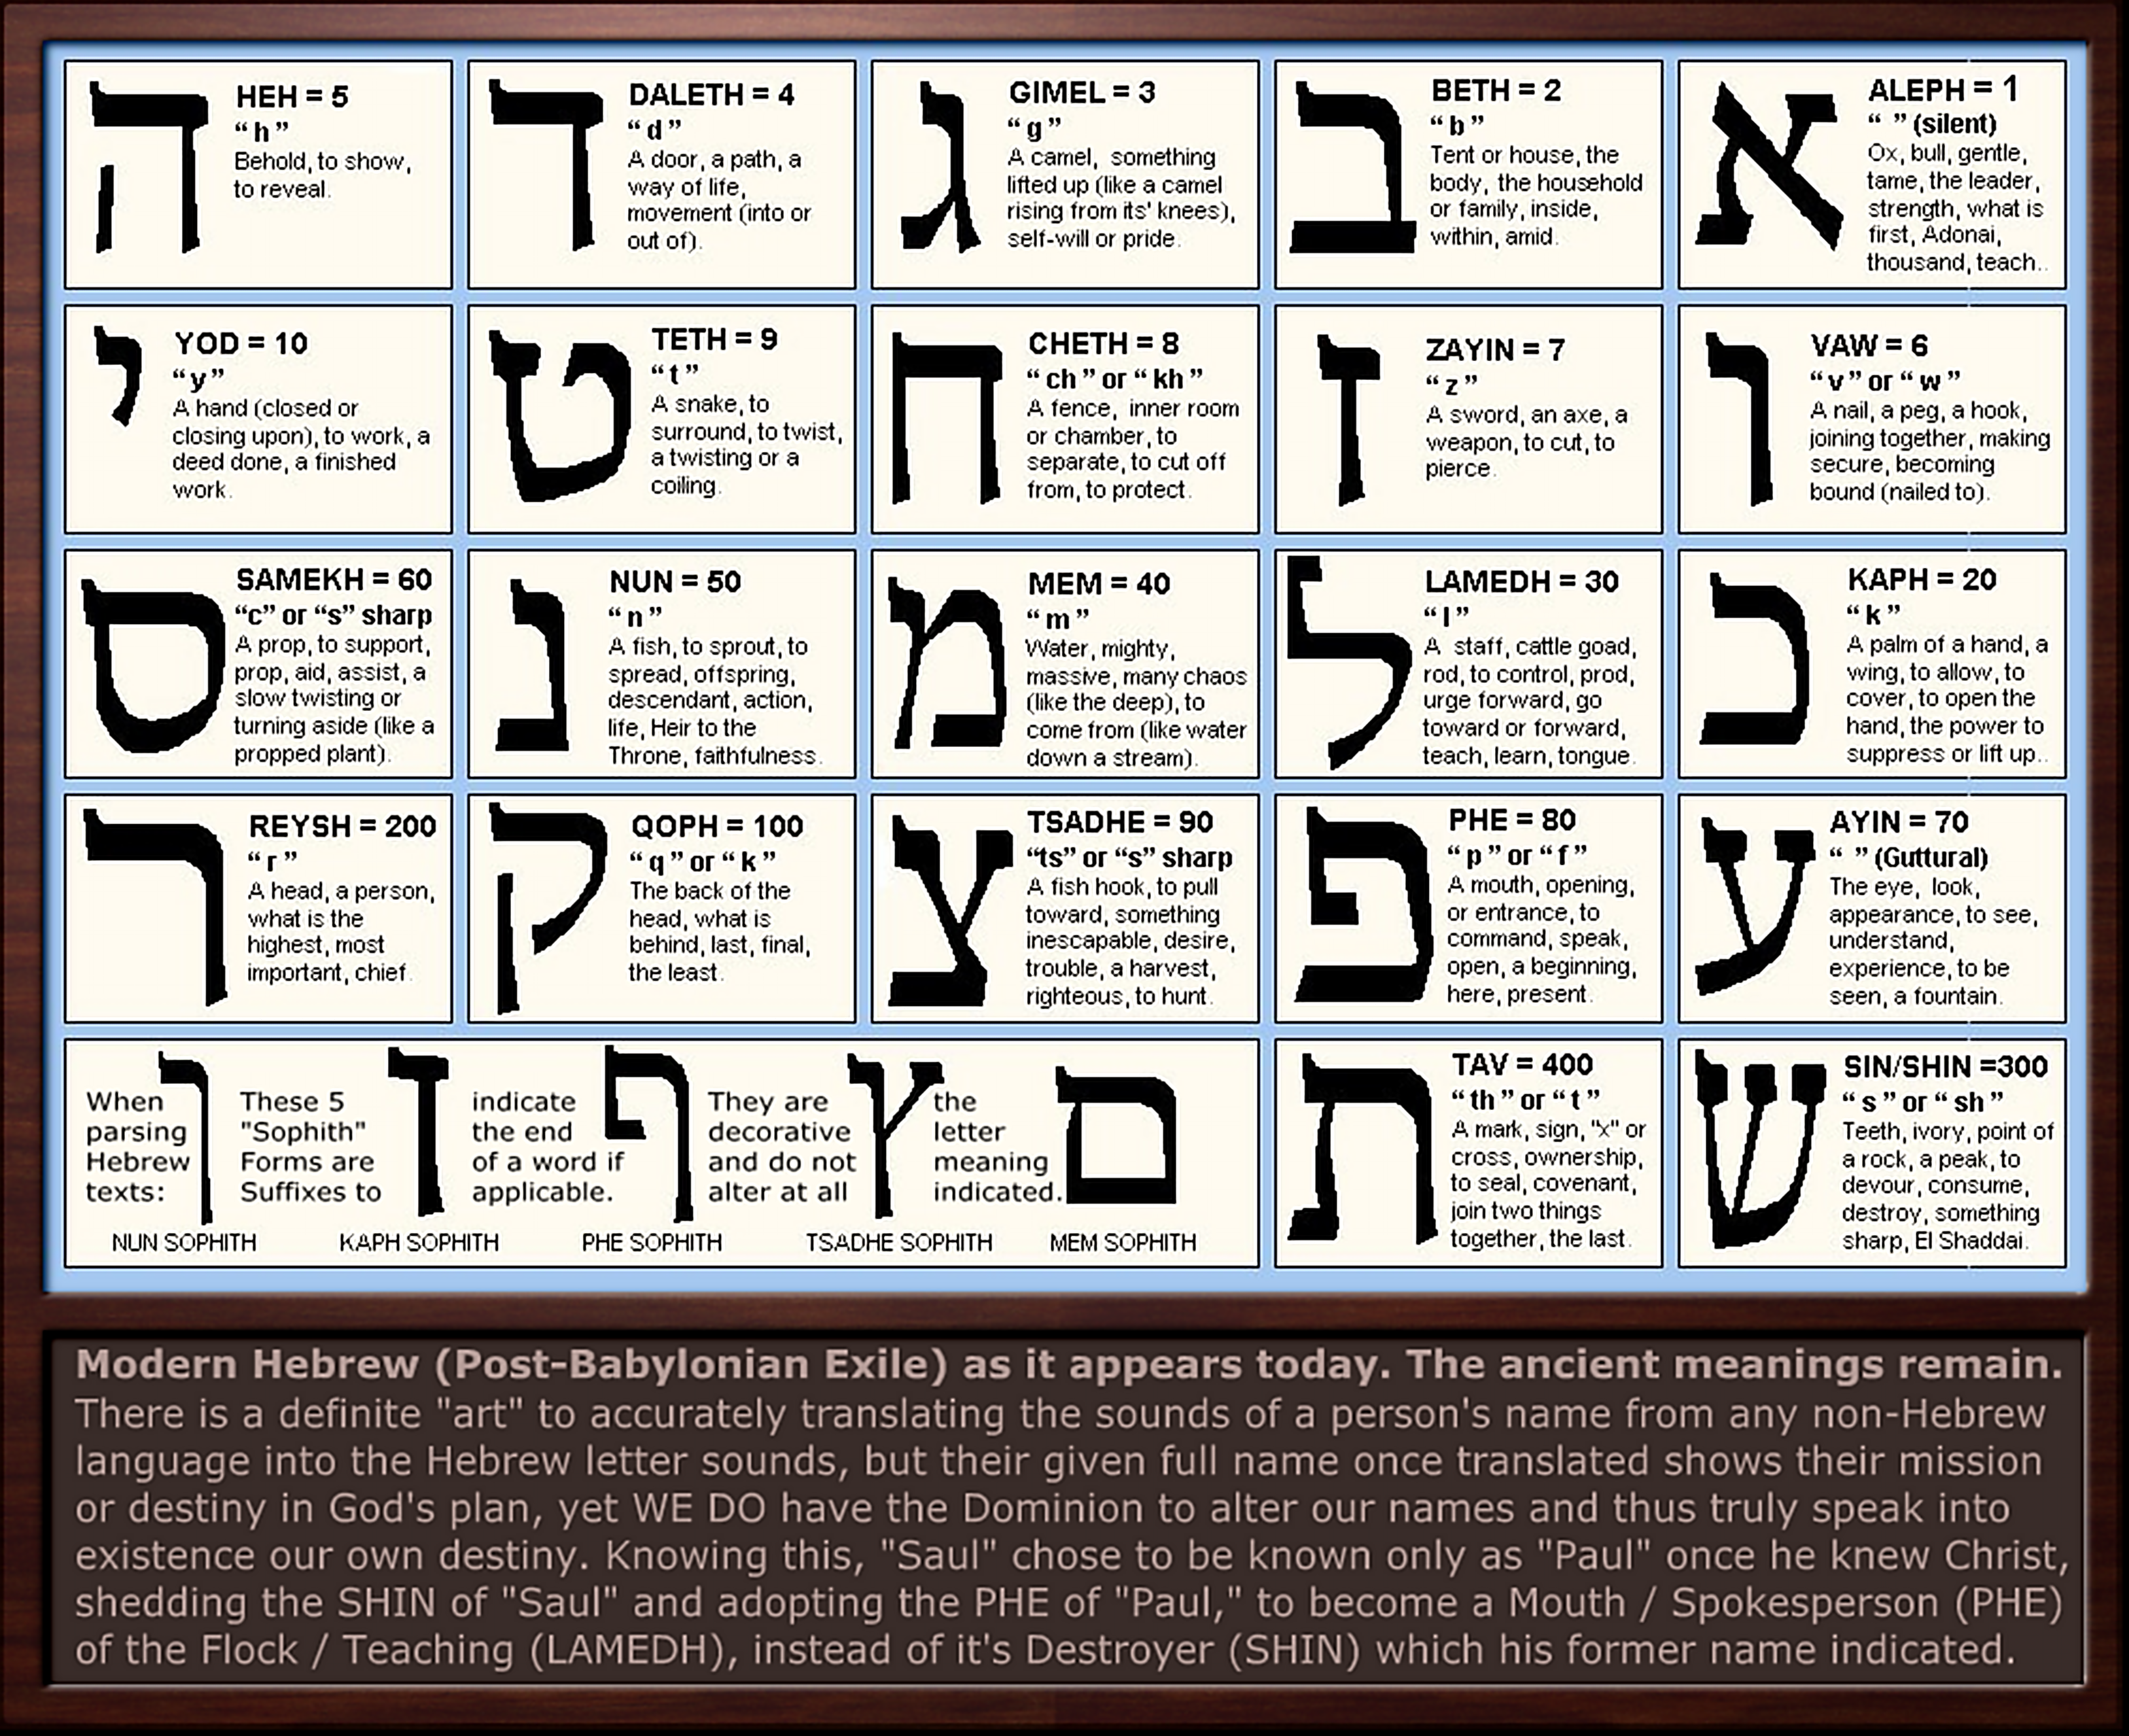 ancient hebrew letter meanings by sum1good on deviantart hebrew letter meanings chart by sum1good on deviantart 630